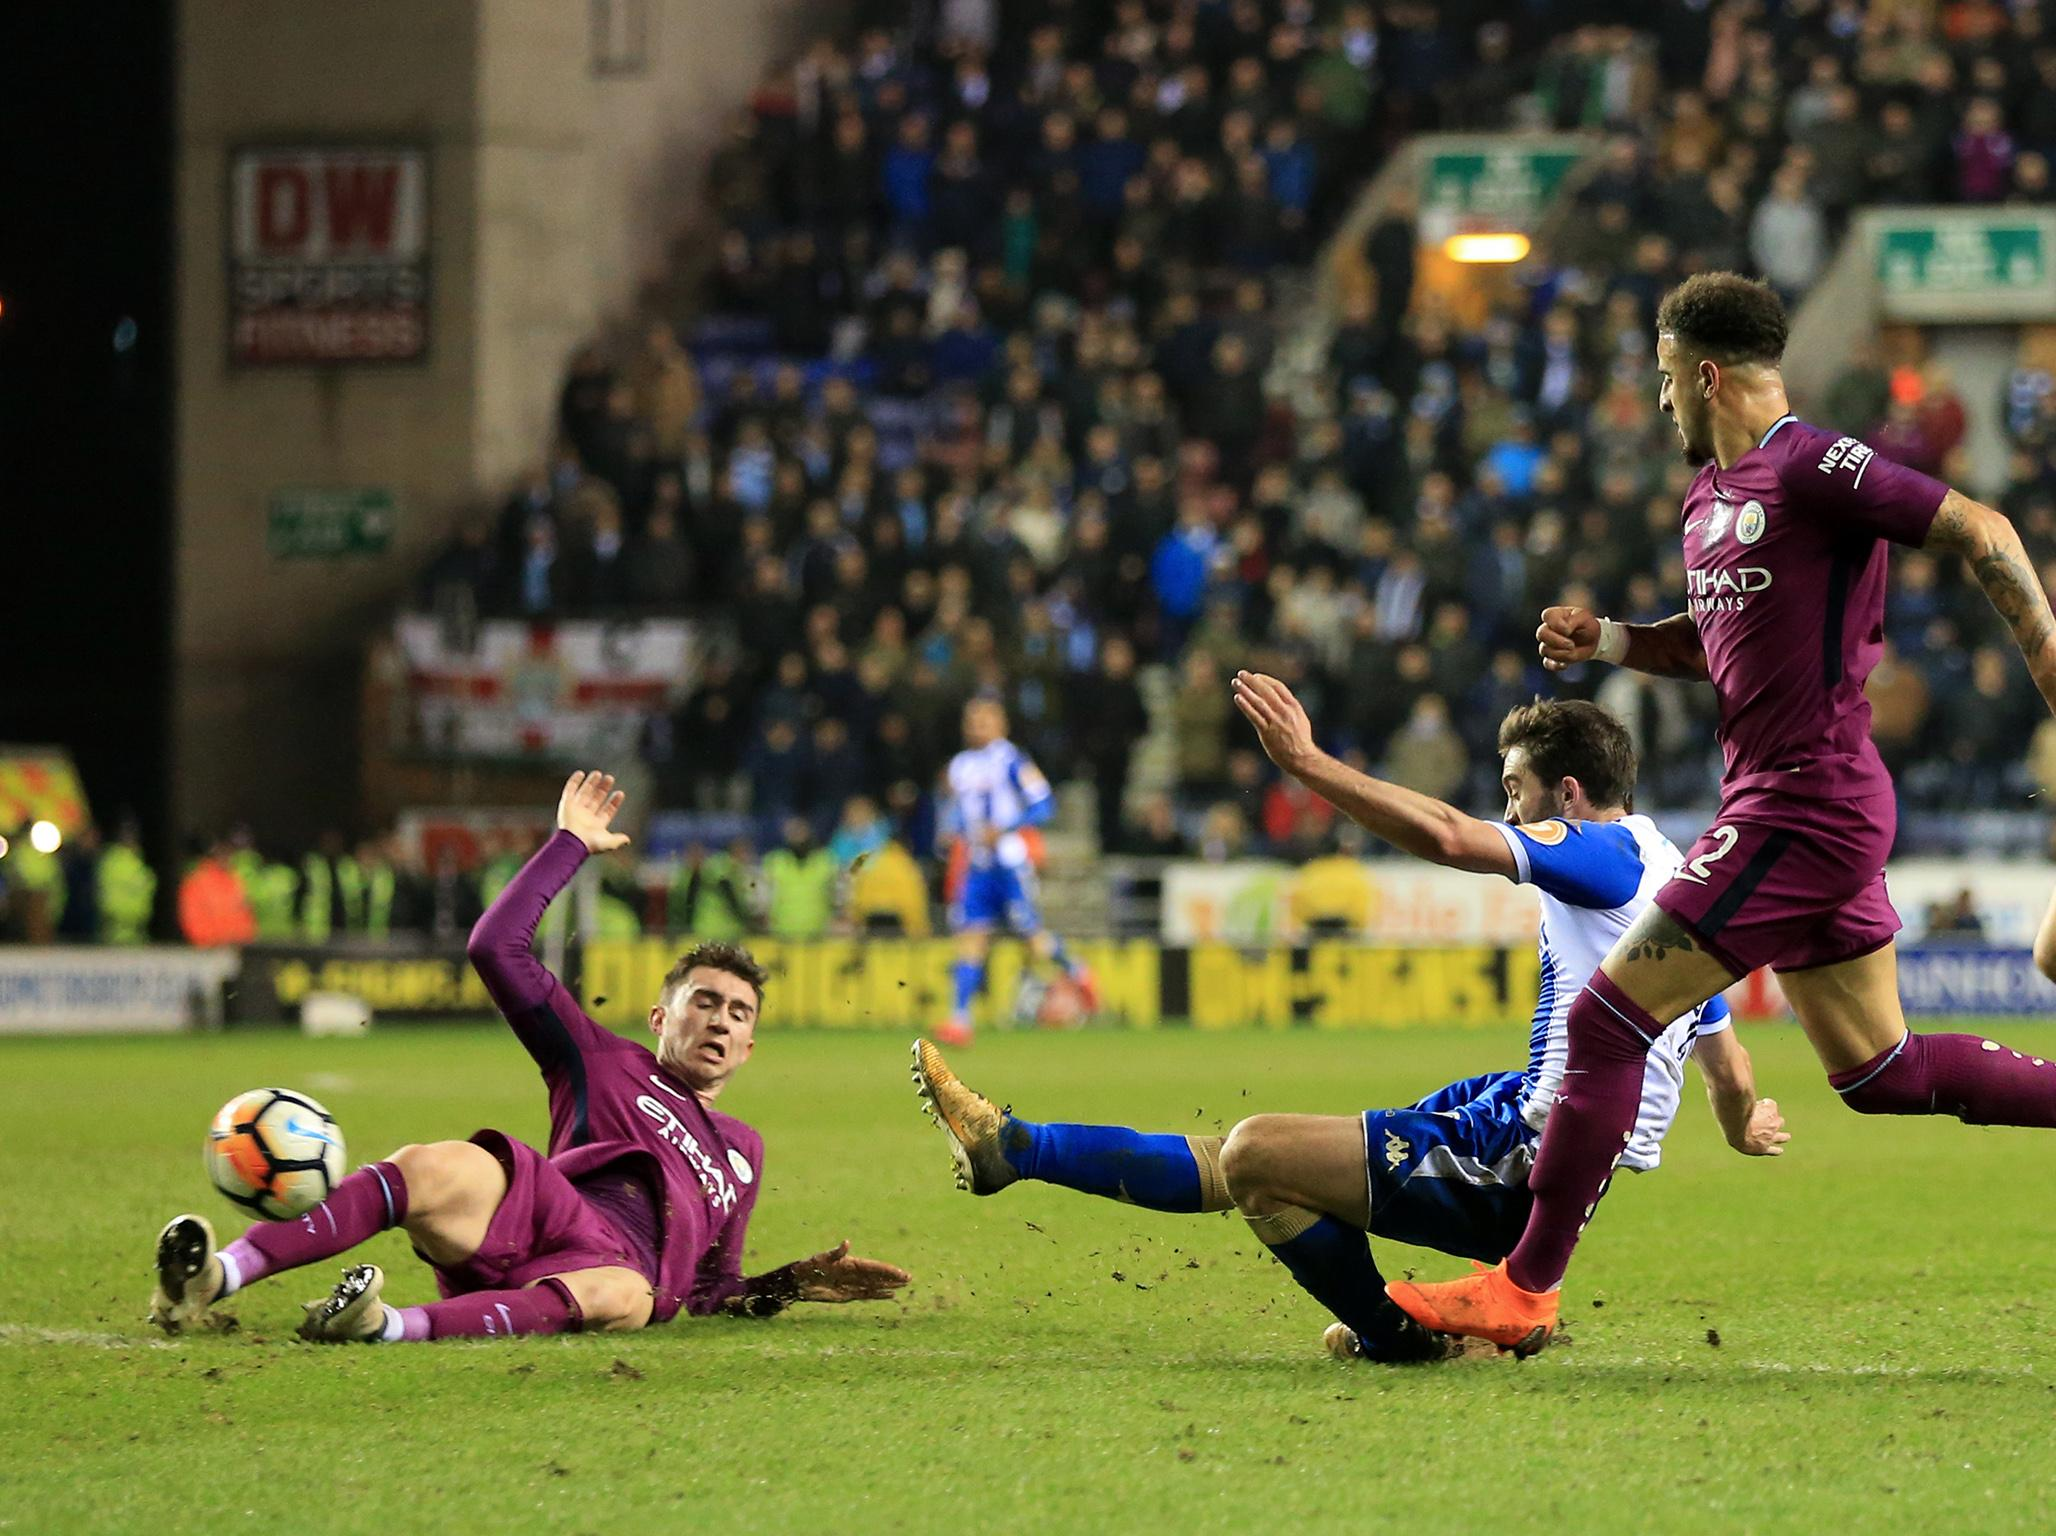 Will Grigg fires Wigan past 10-man Manchester City in feisty FA Cup tie after managers' half-time tunnel rage